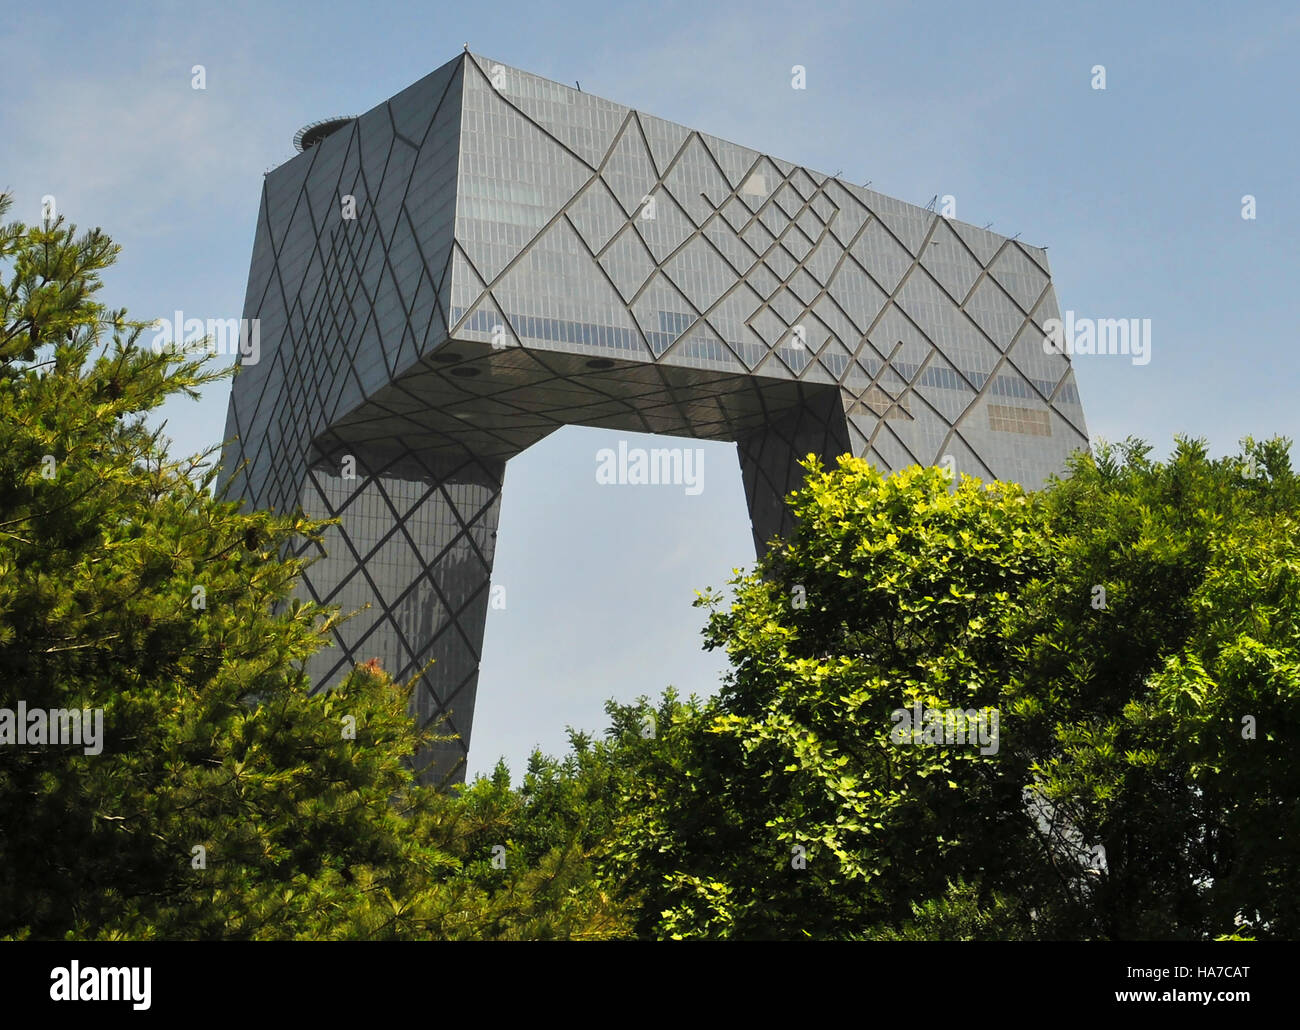 CCTV TV station HQ , Central Business District, Beijing, China, Asia - Stock Image